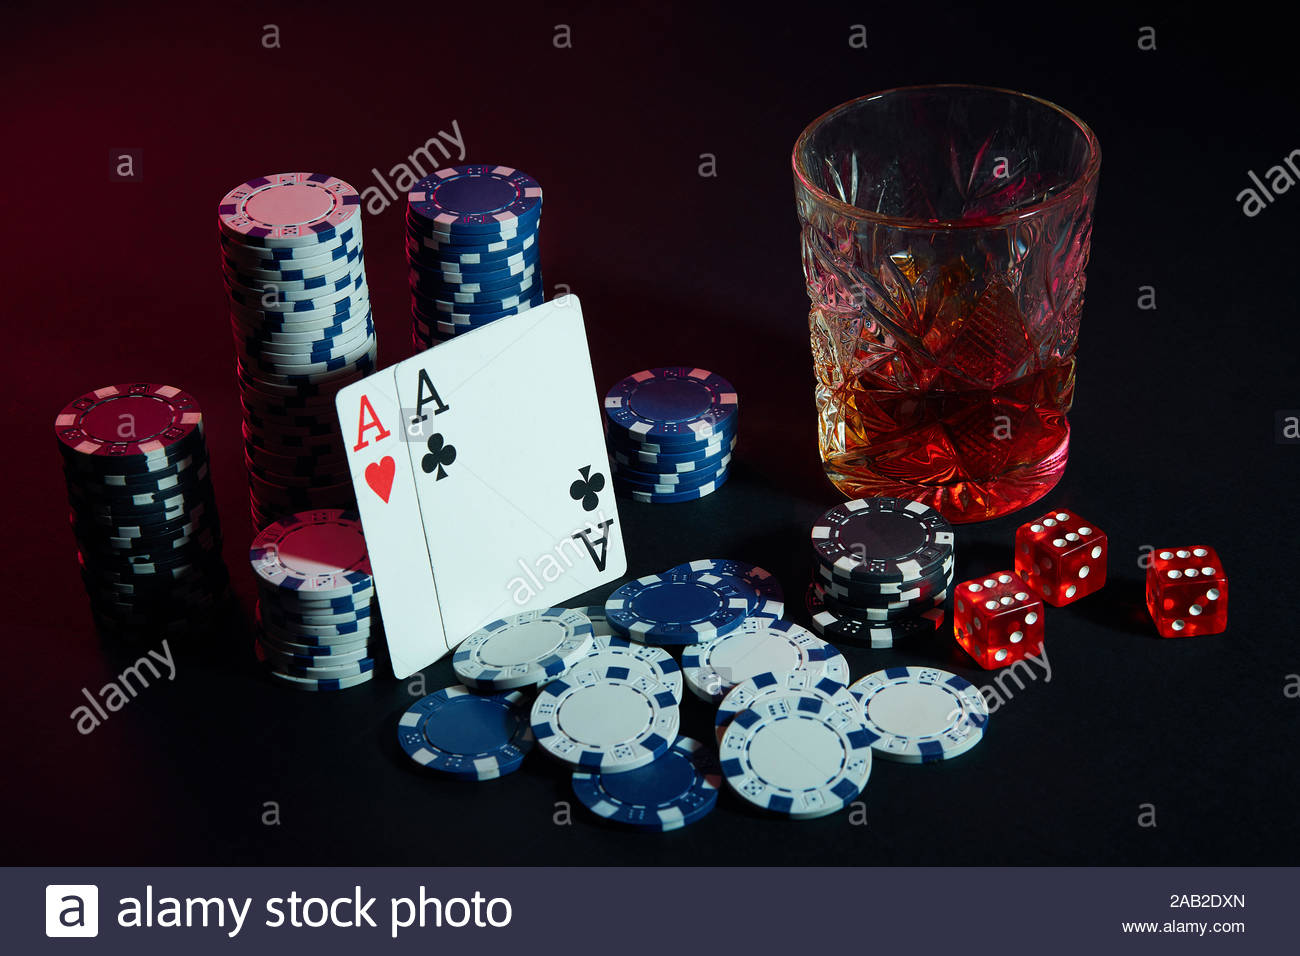 Learn Something New From Gambling Recently? You Answered!